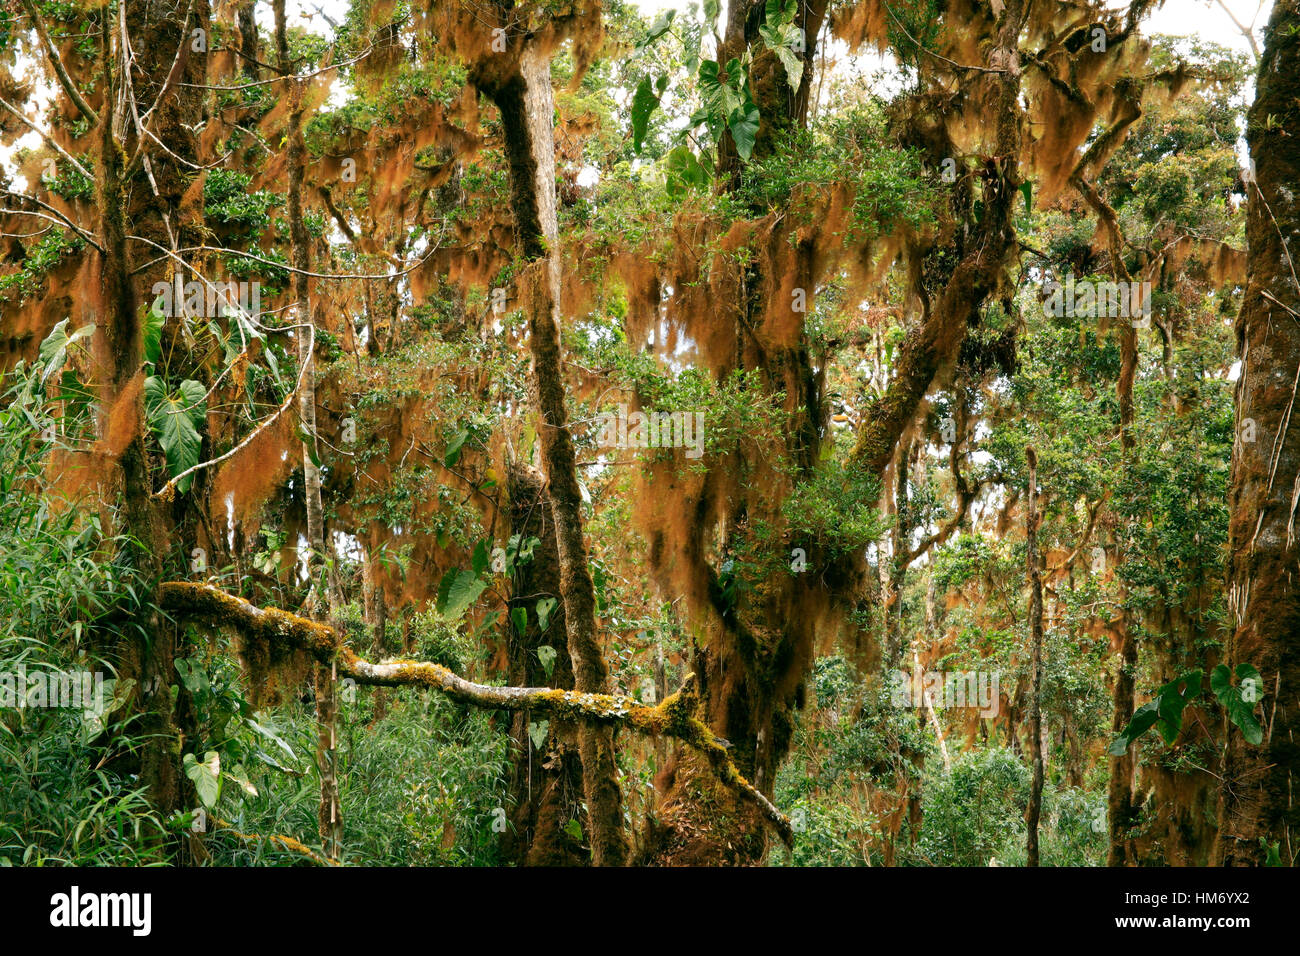 Orange liverworts on cloud forest branches. Chirripo National Park, Costa Rica. - Stock Image